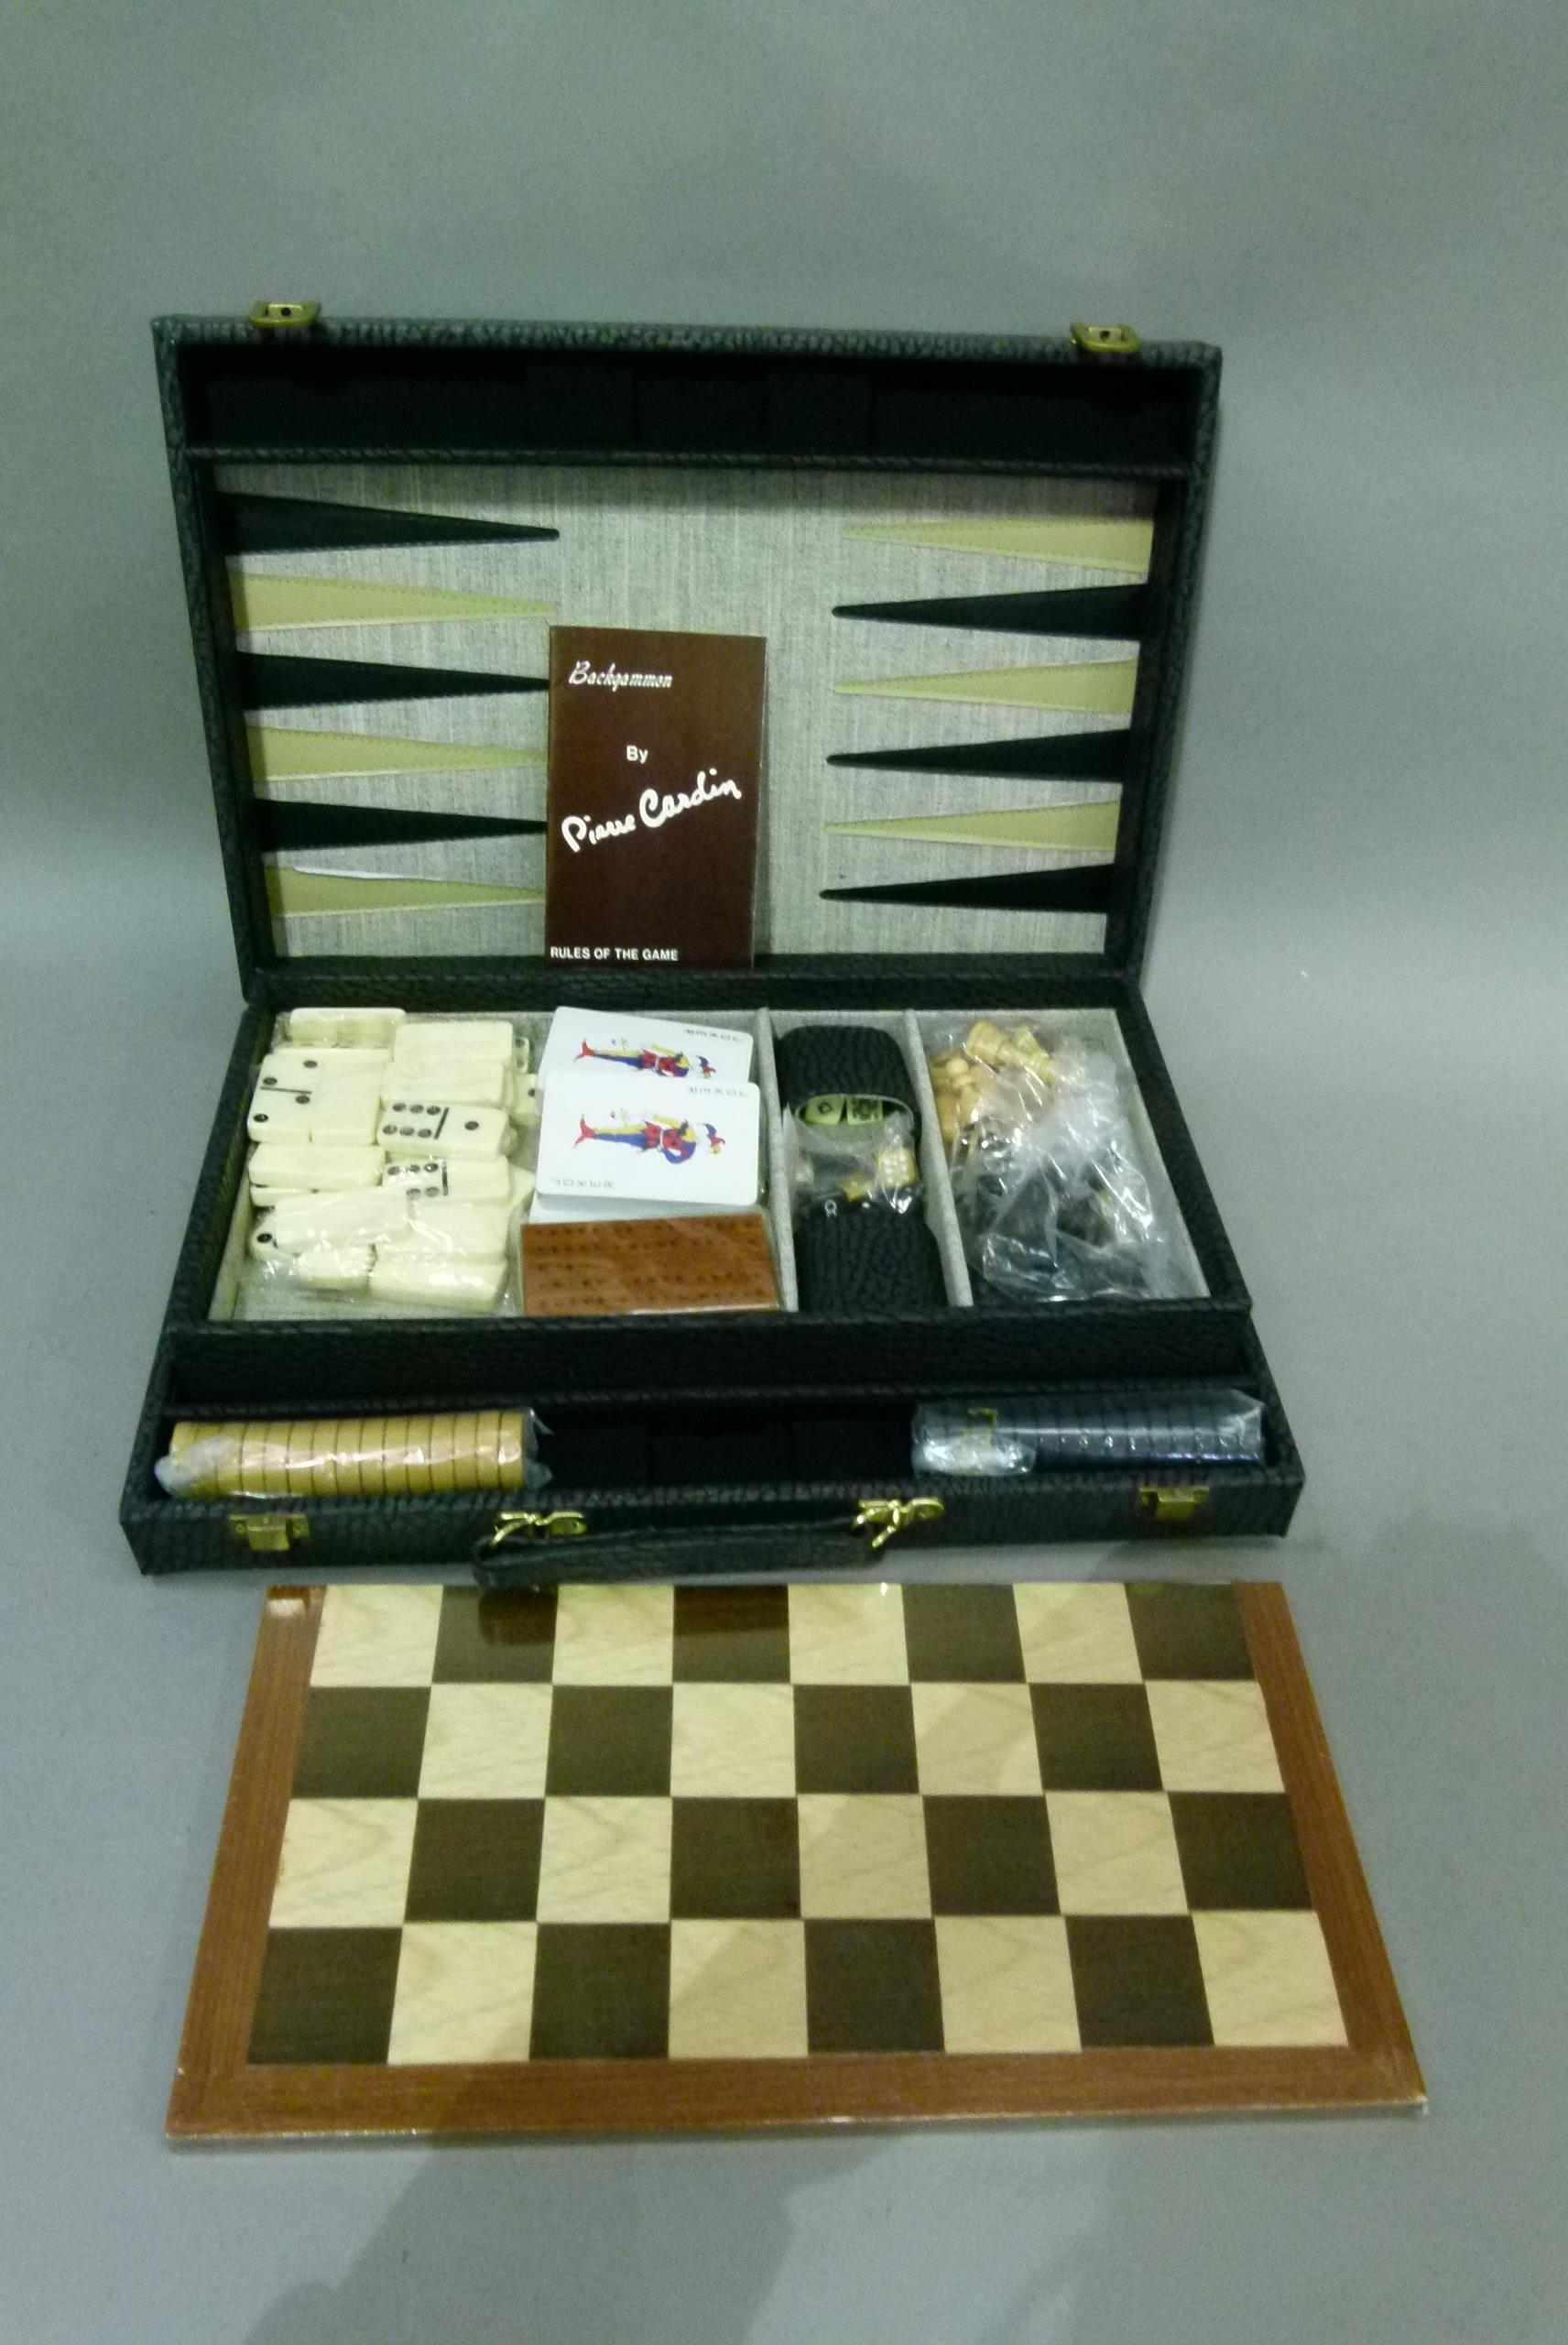 A games compendium comprising backgammon board, checkers board, dominos, cards, cribbage, dice and - Image 3 of 4